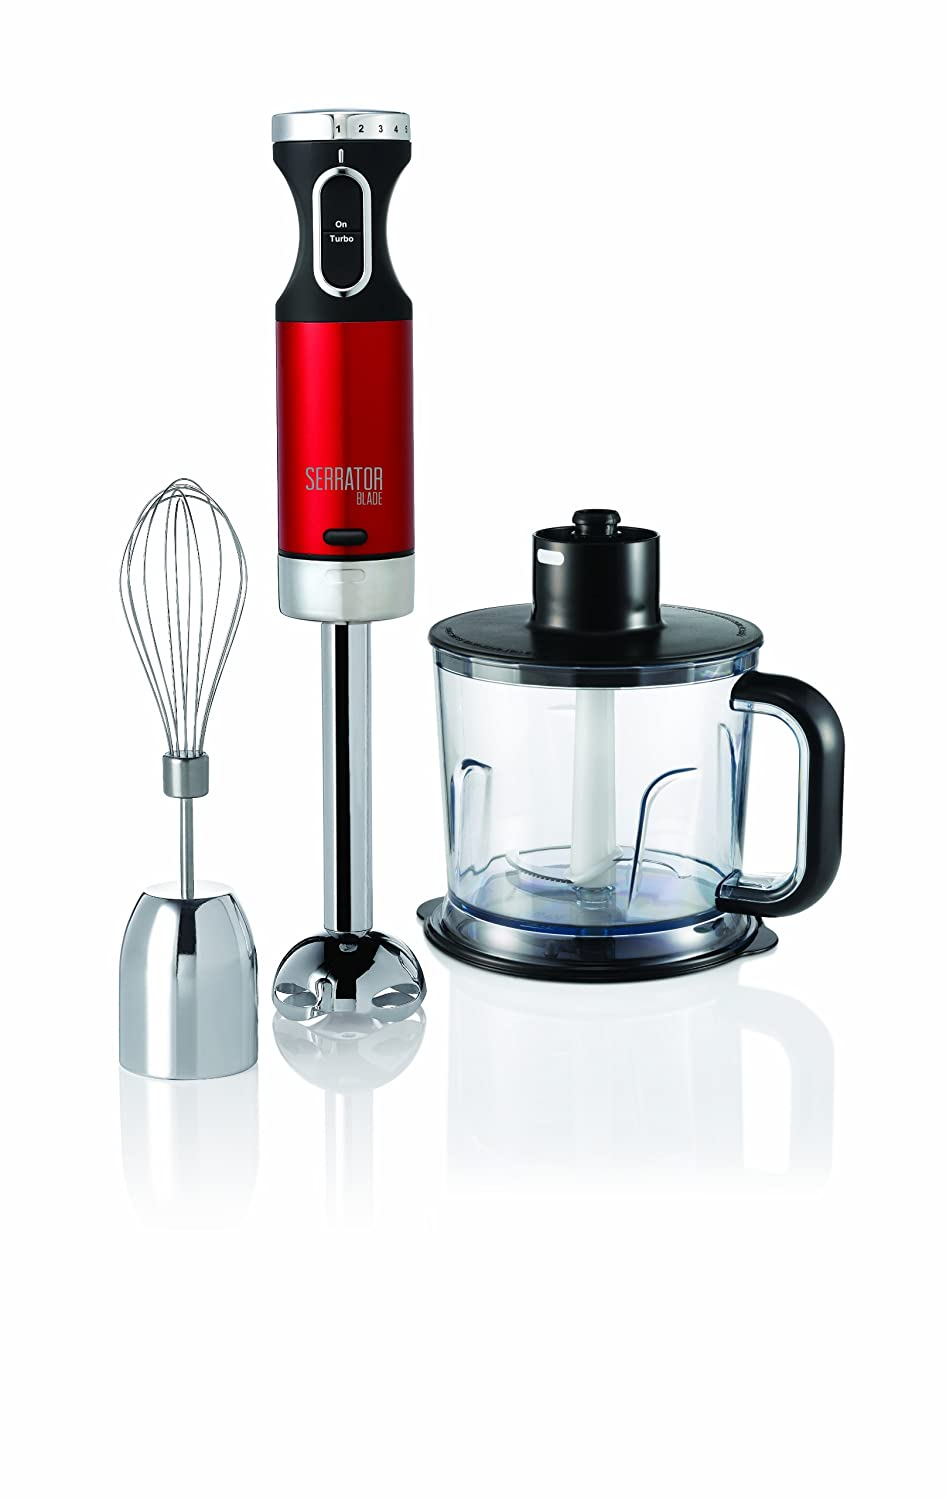 Morphy Richards 402010 Accents Hand Blender Set with Serrator Blade ...